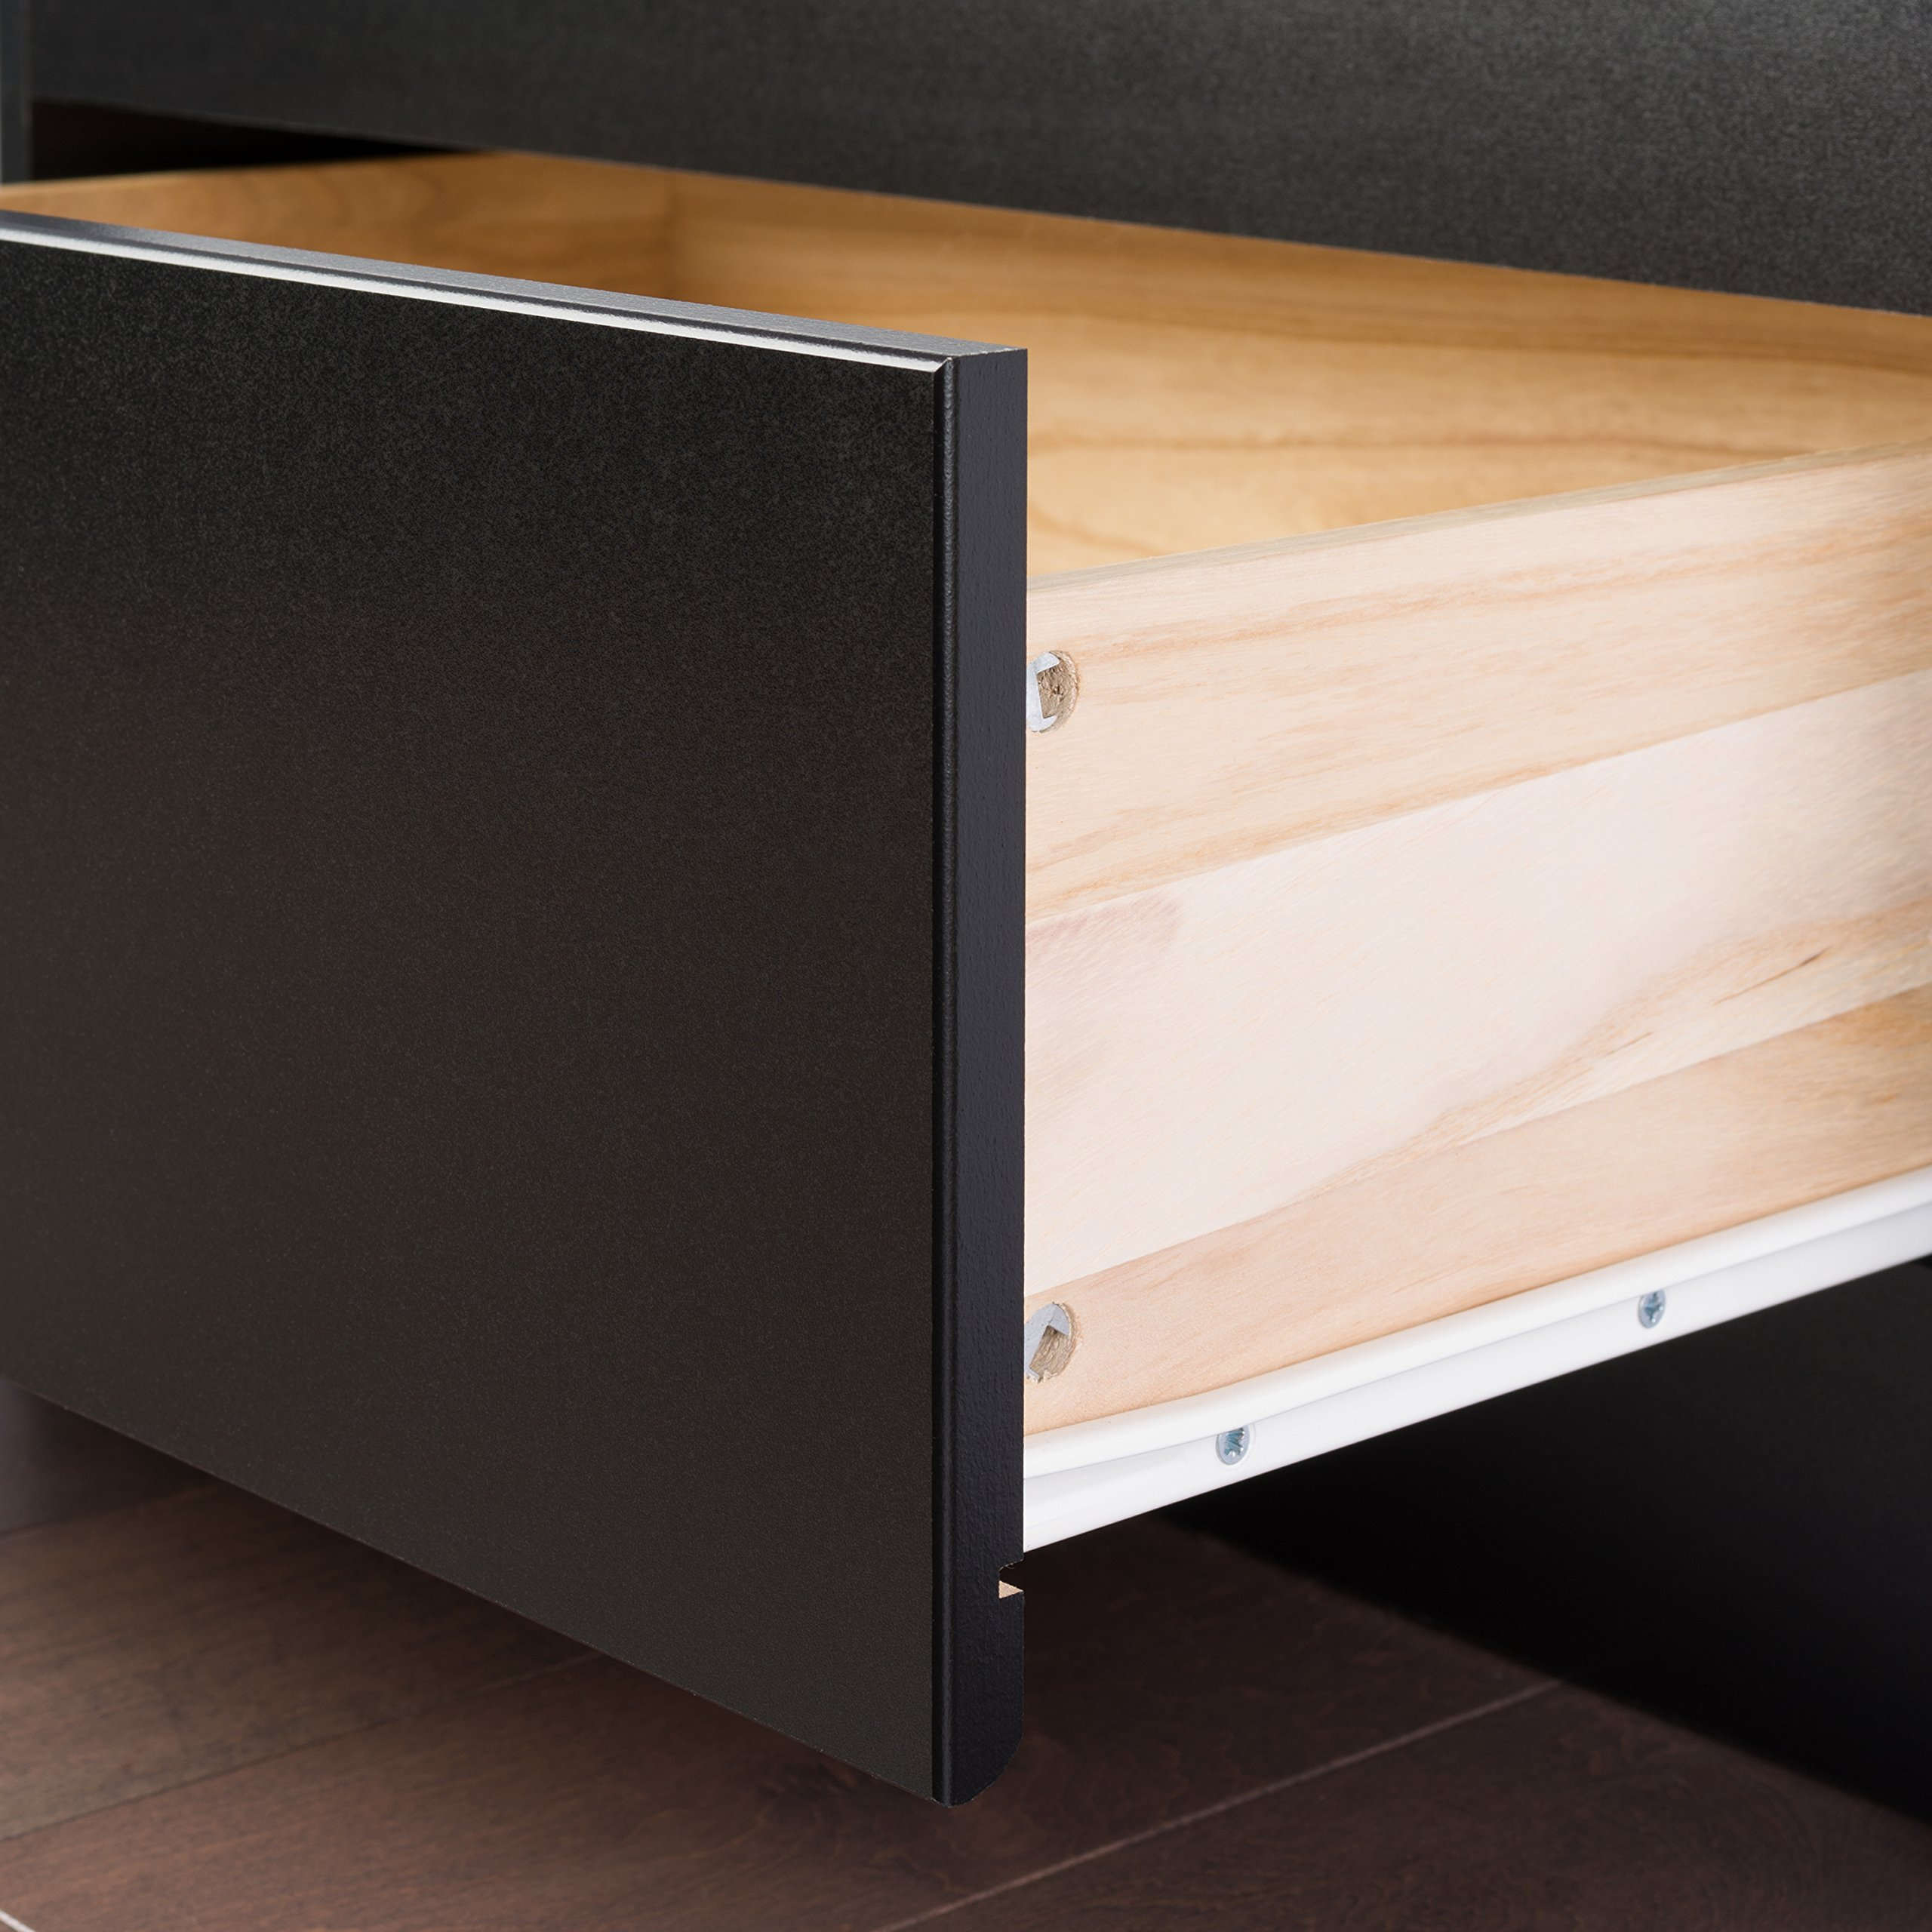 Black Queen Mate's Platform Storage Bed with 6 Drawers by Prepac (Image #4)